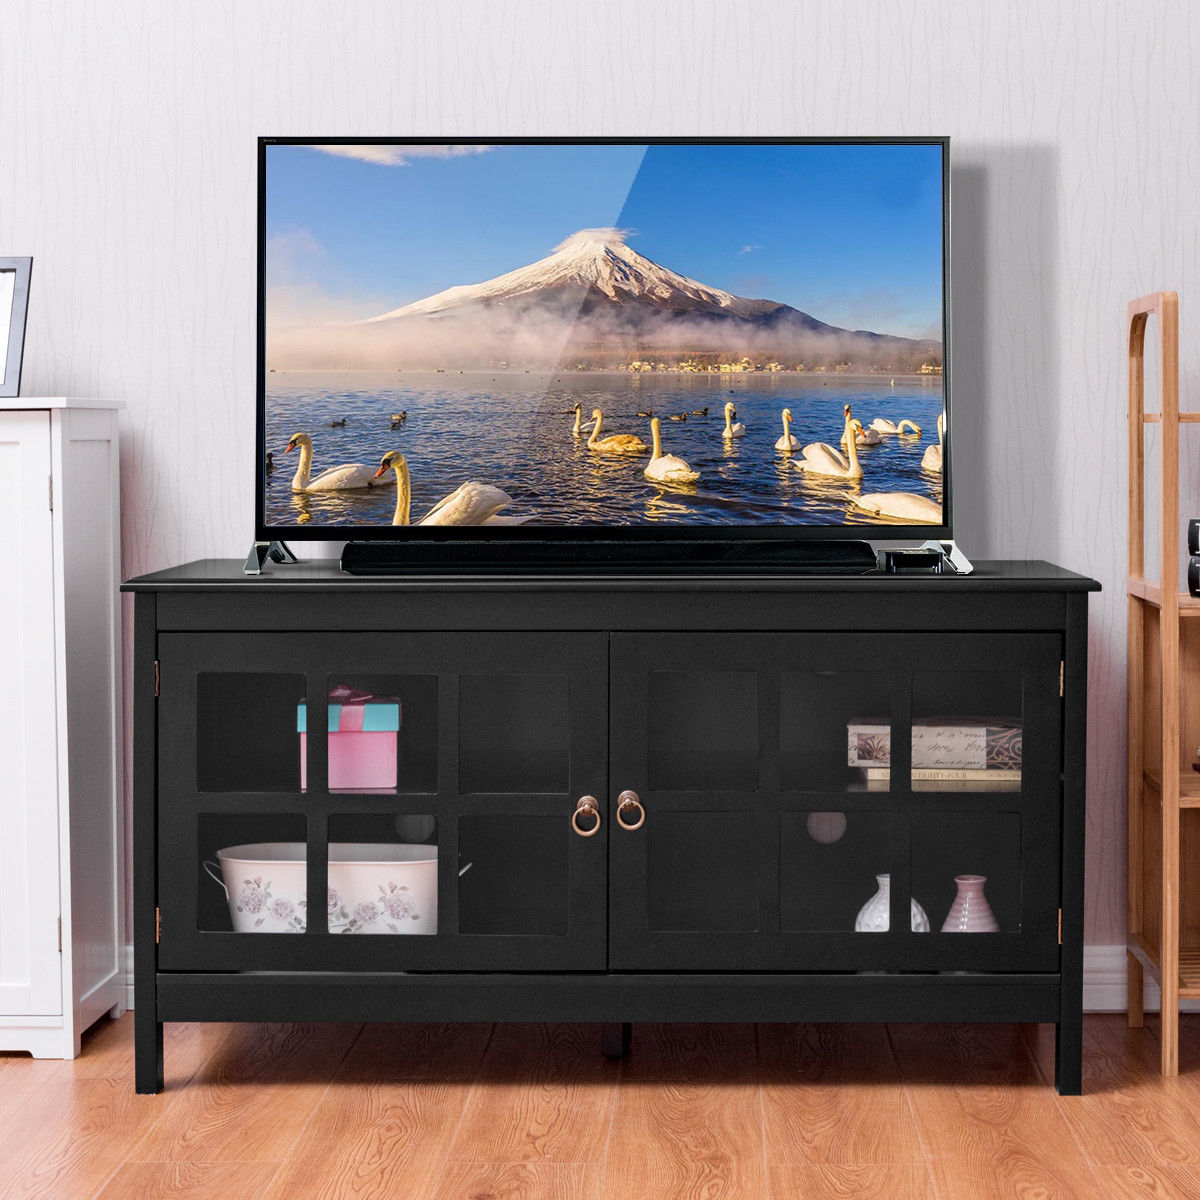 Giantex 50'' TV Stand Modern Living Room Wood Storage Console Entertainment Center With 2 Doors Home Furniture HW56756